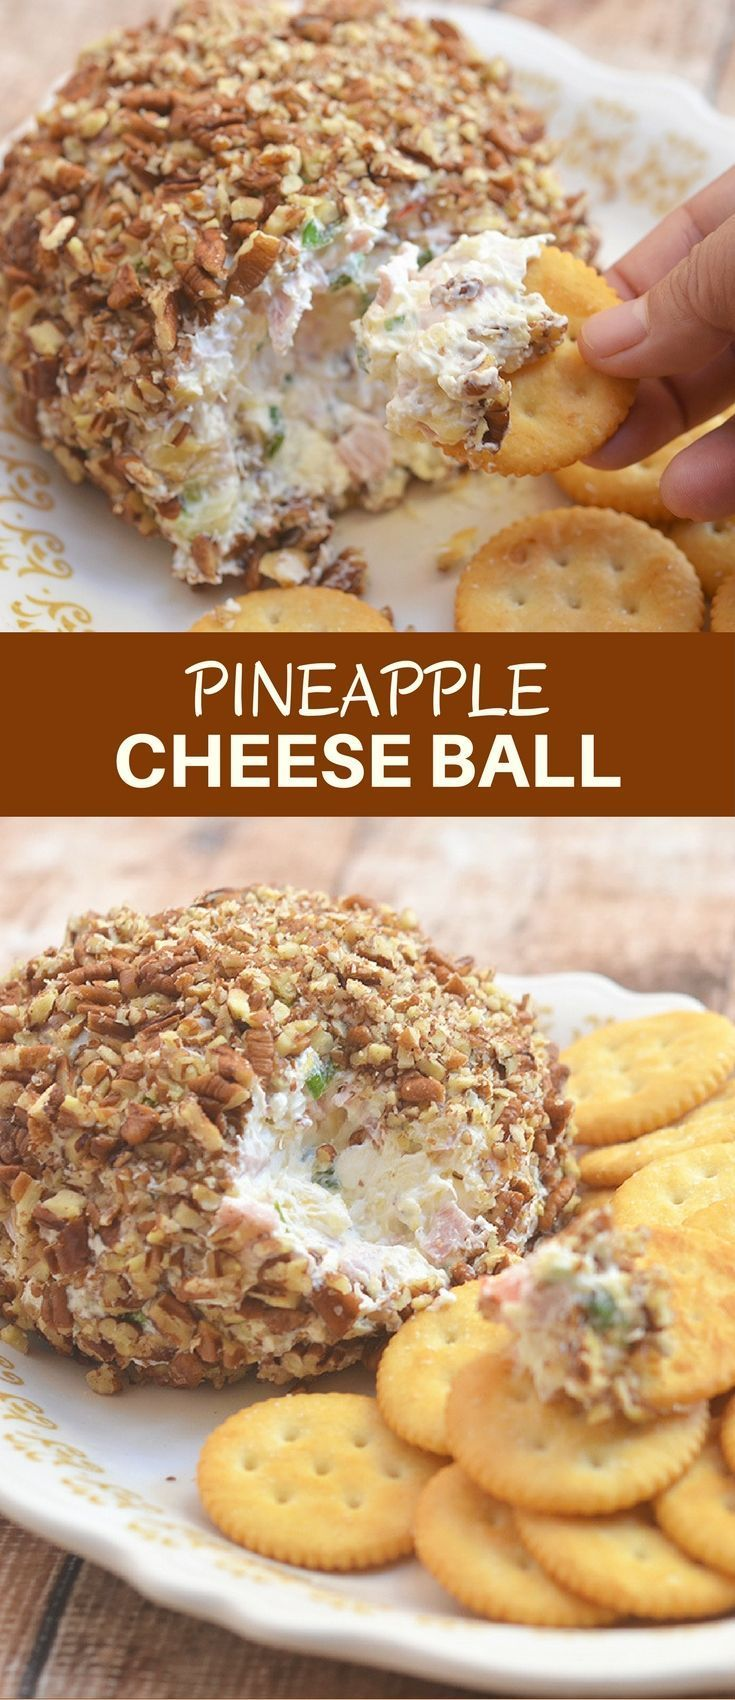 Pineapple Cheese Ball with cream cheese, chopped ham, crushed pineapple, red bell peppers, celery, green onions, and pecans is a delicious medley of sweet and savory flavors! A guaranteed hit at any holiday gathering!